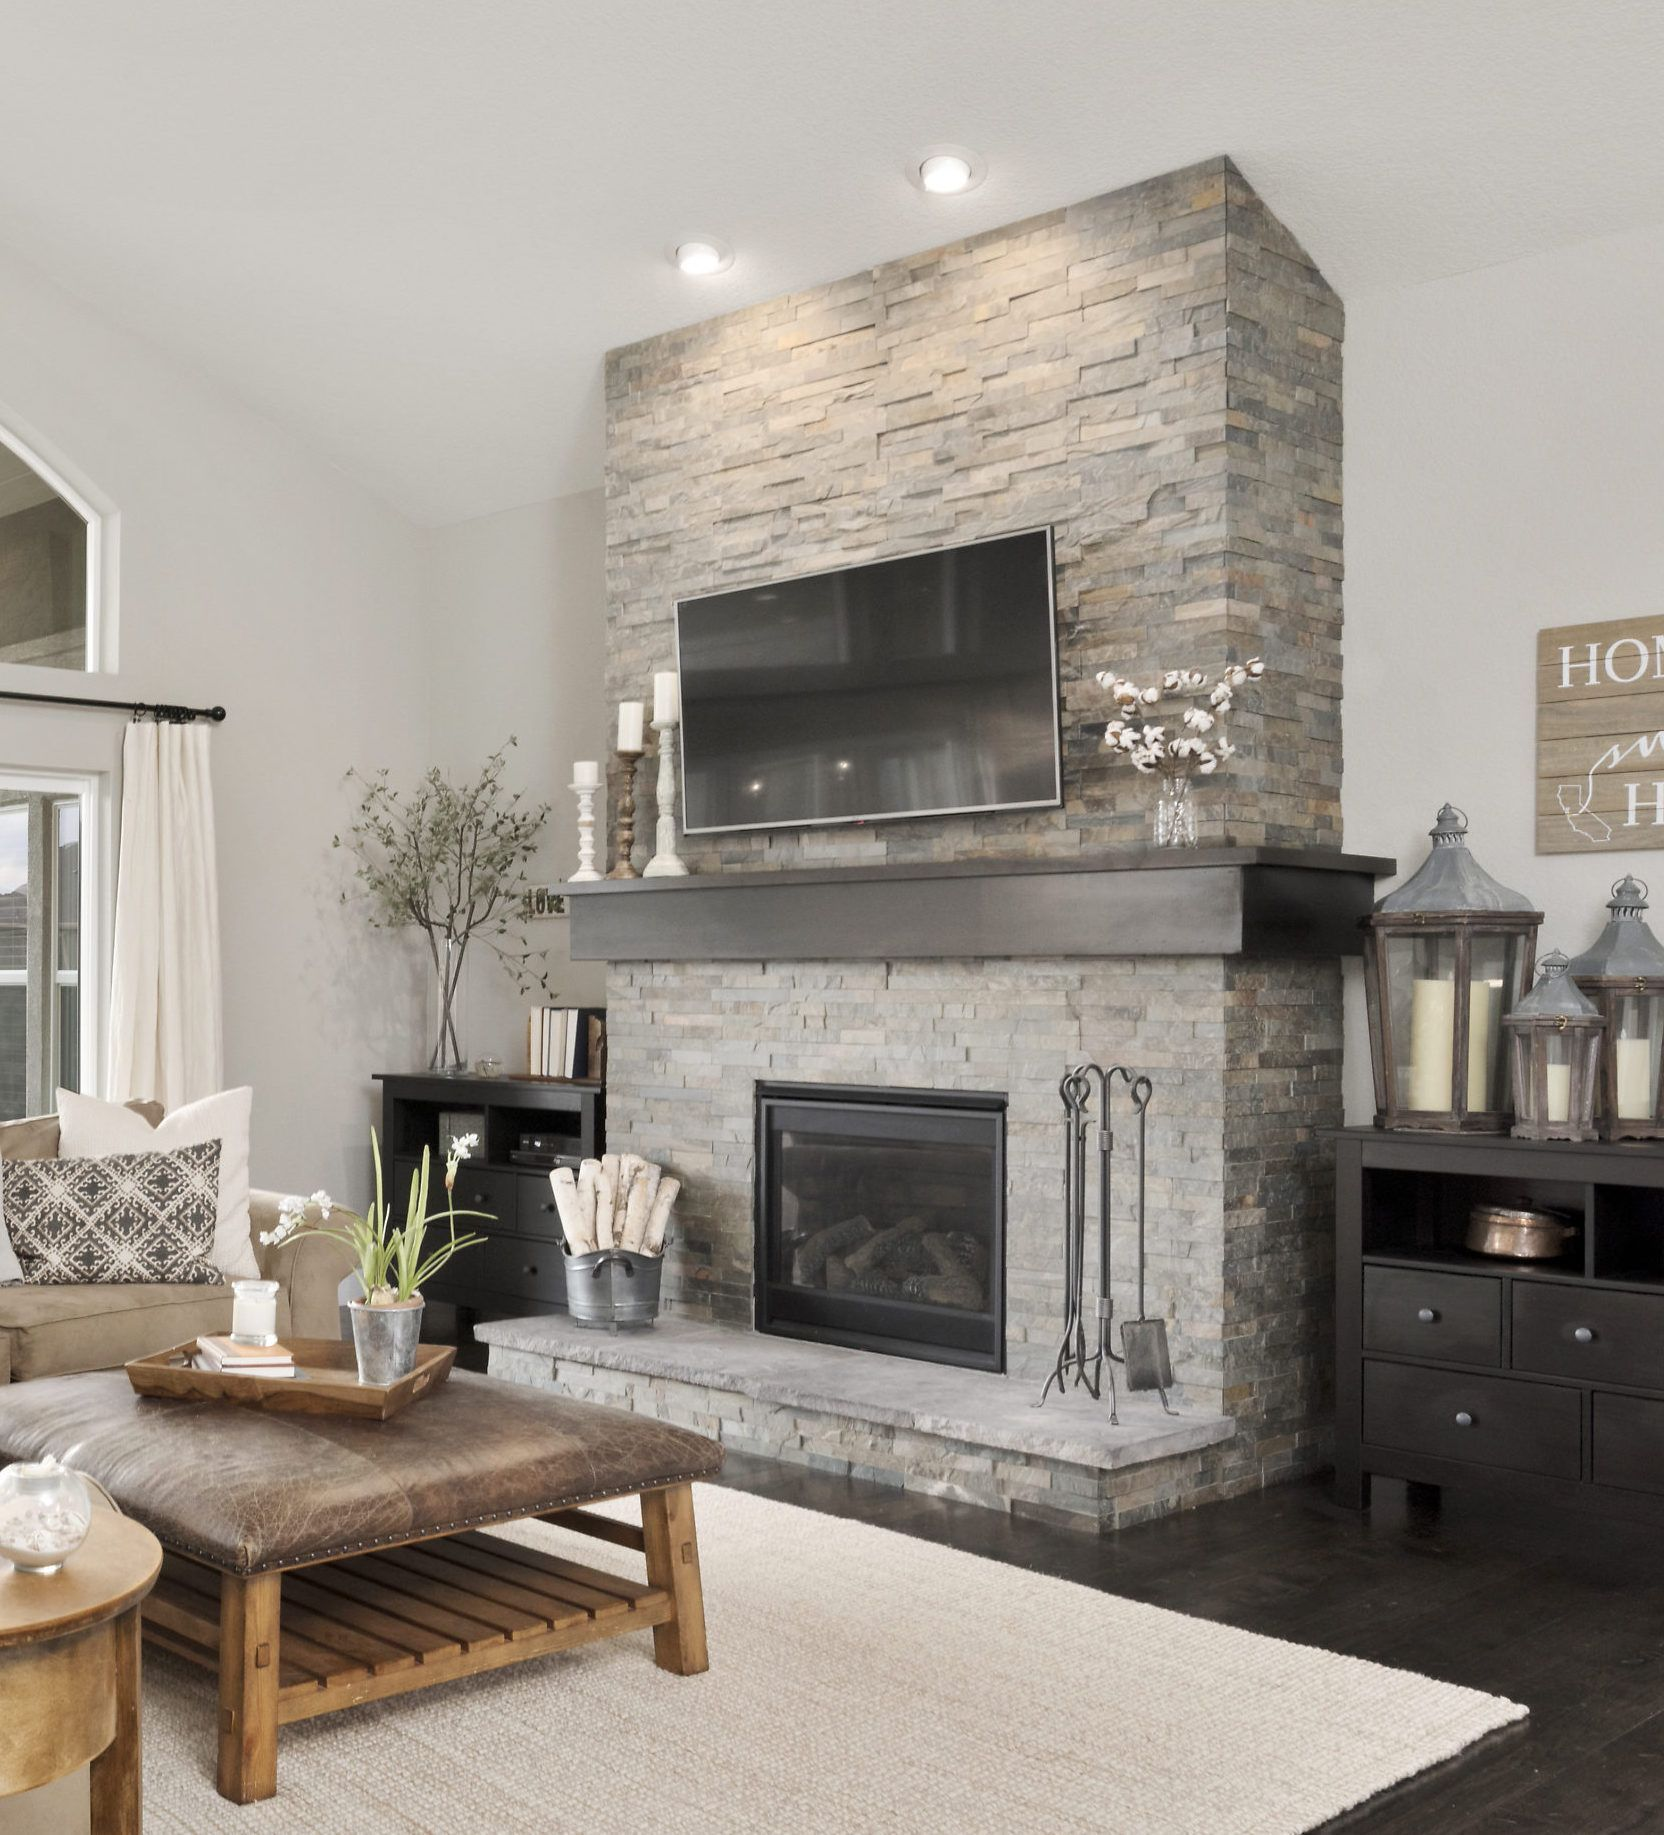 Newest Free Of Charge Stone Fireplace With Tv Thoughts Stone